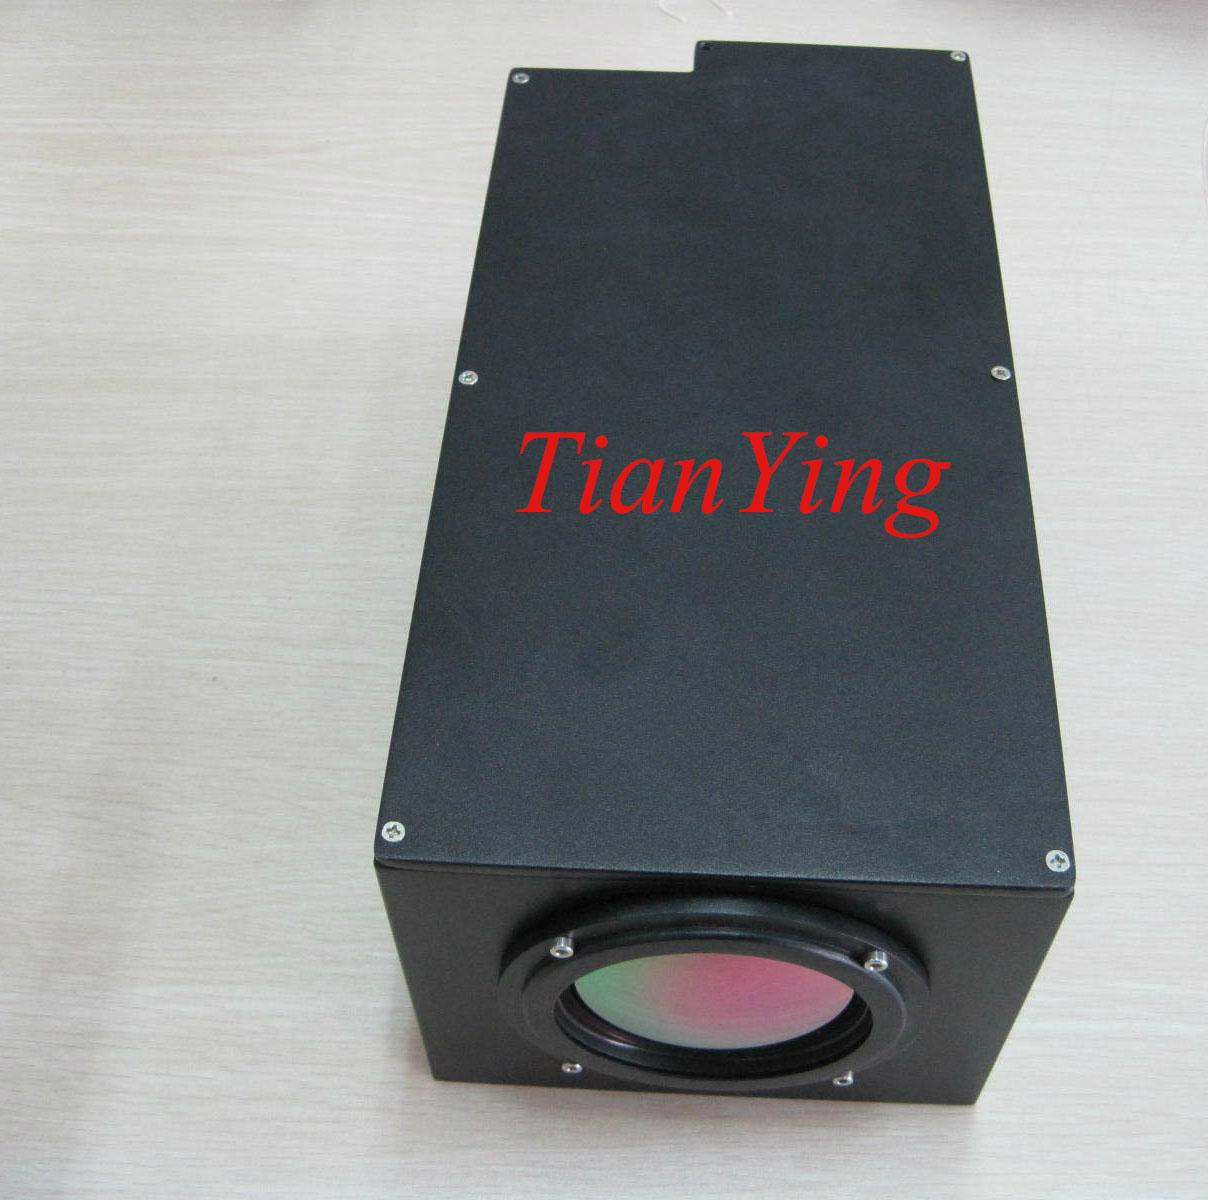 C280 6km/8km Cooled Infrared Thermal Imaging Camera